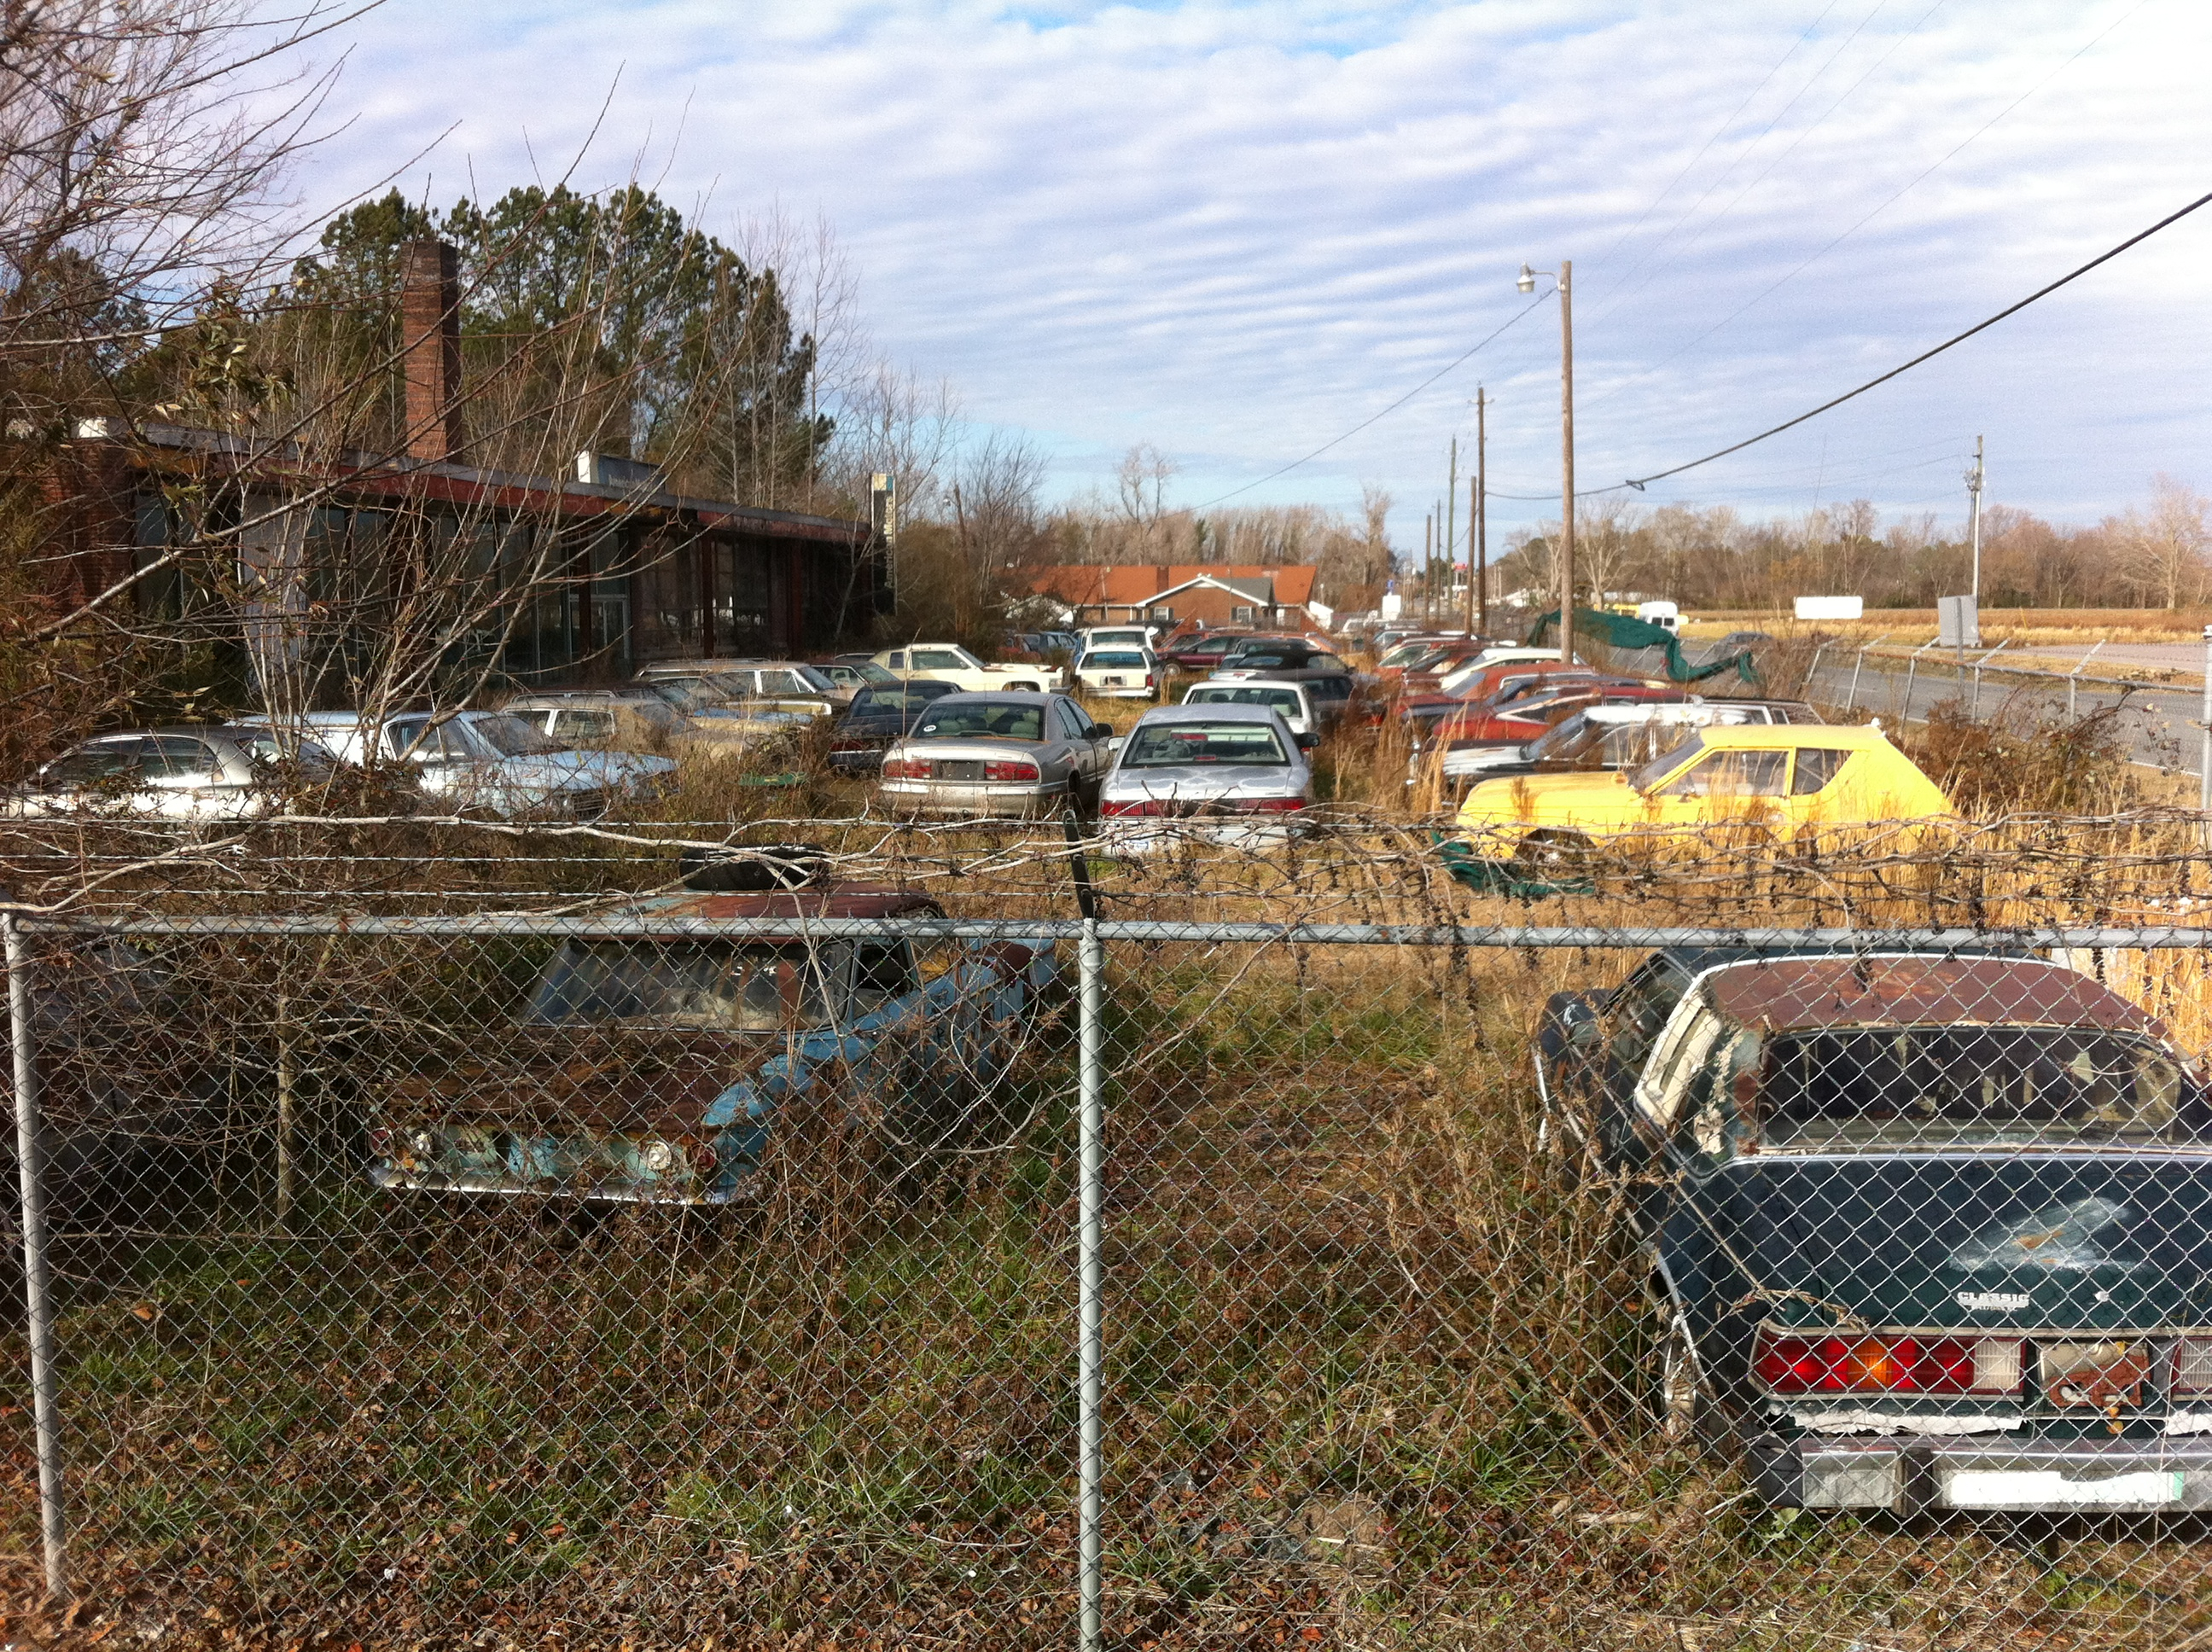 American Pickers Pikeville Nc file:collier motors 2012-01-17 amc-b - wikimedia commons